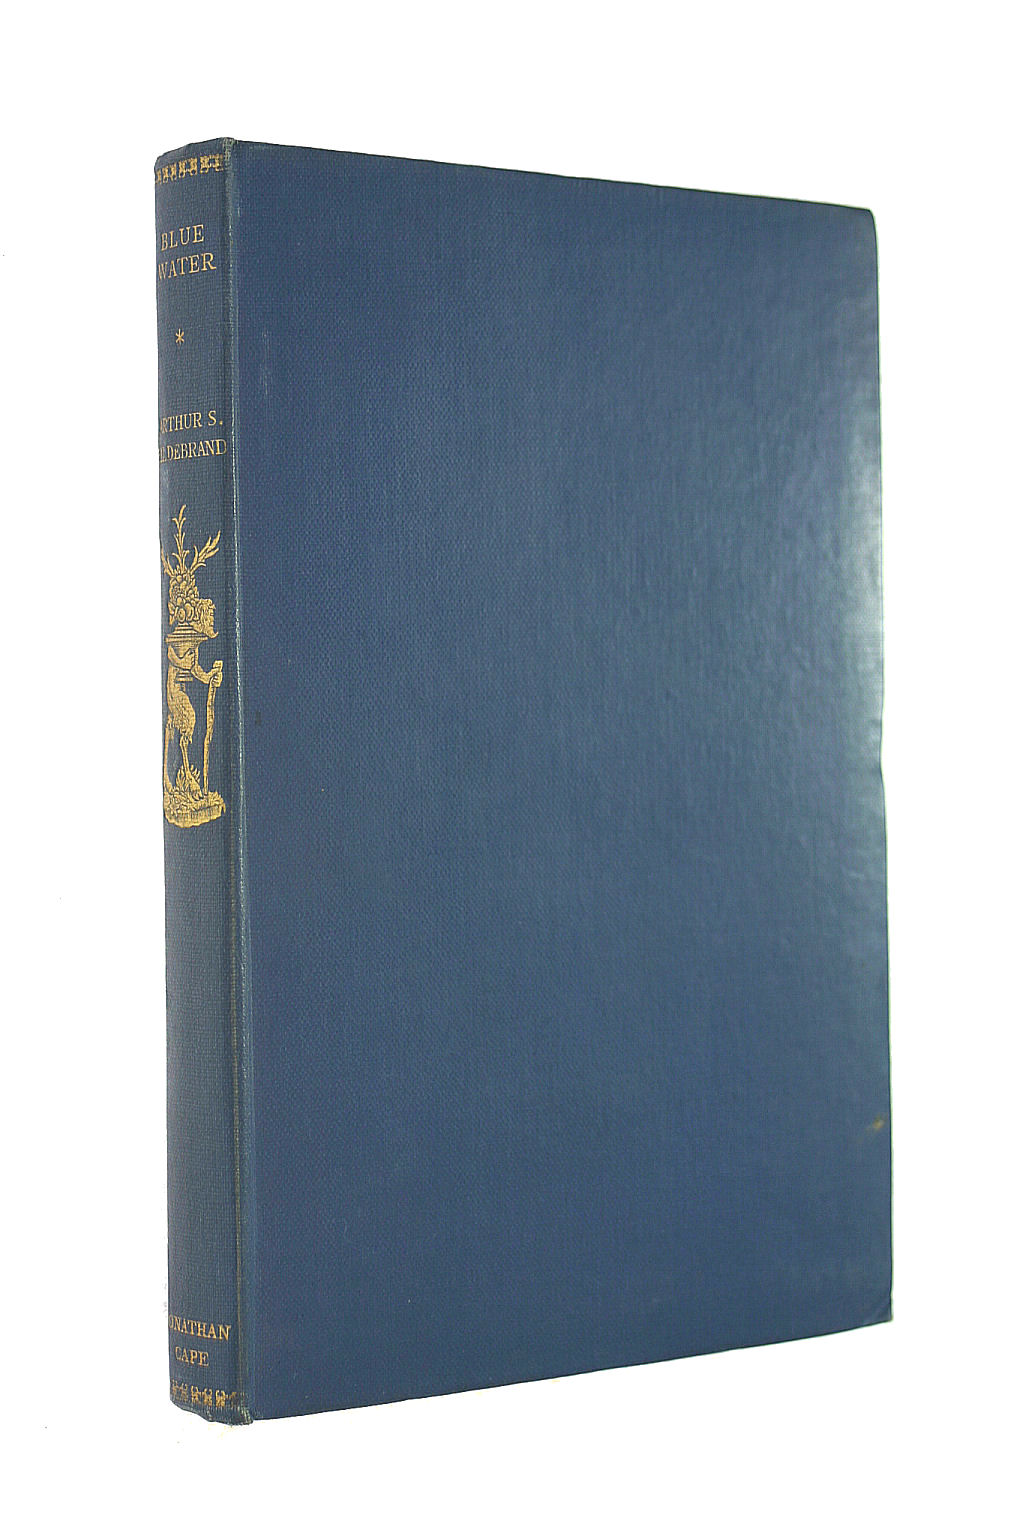 Image for Blue Water (Travellers' library)